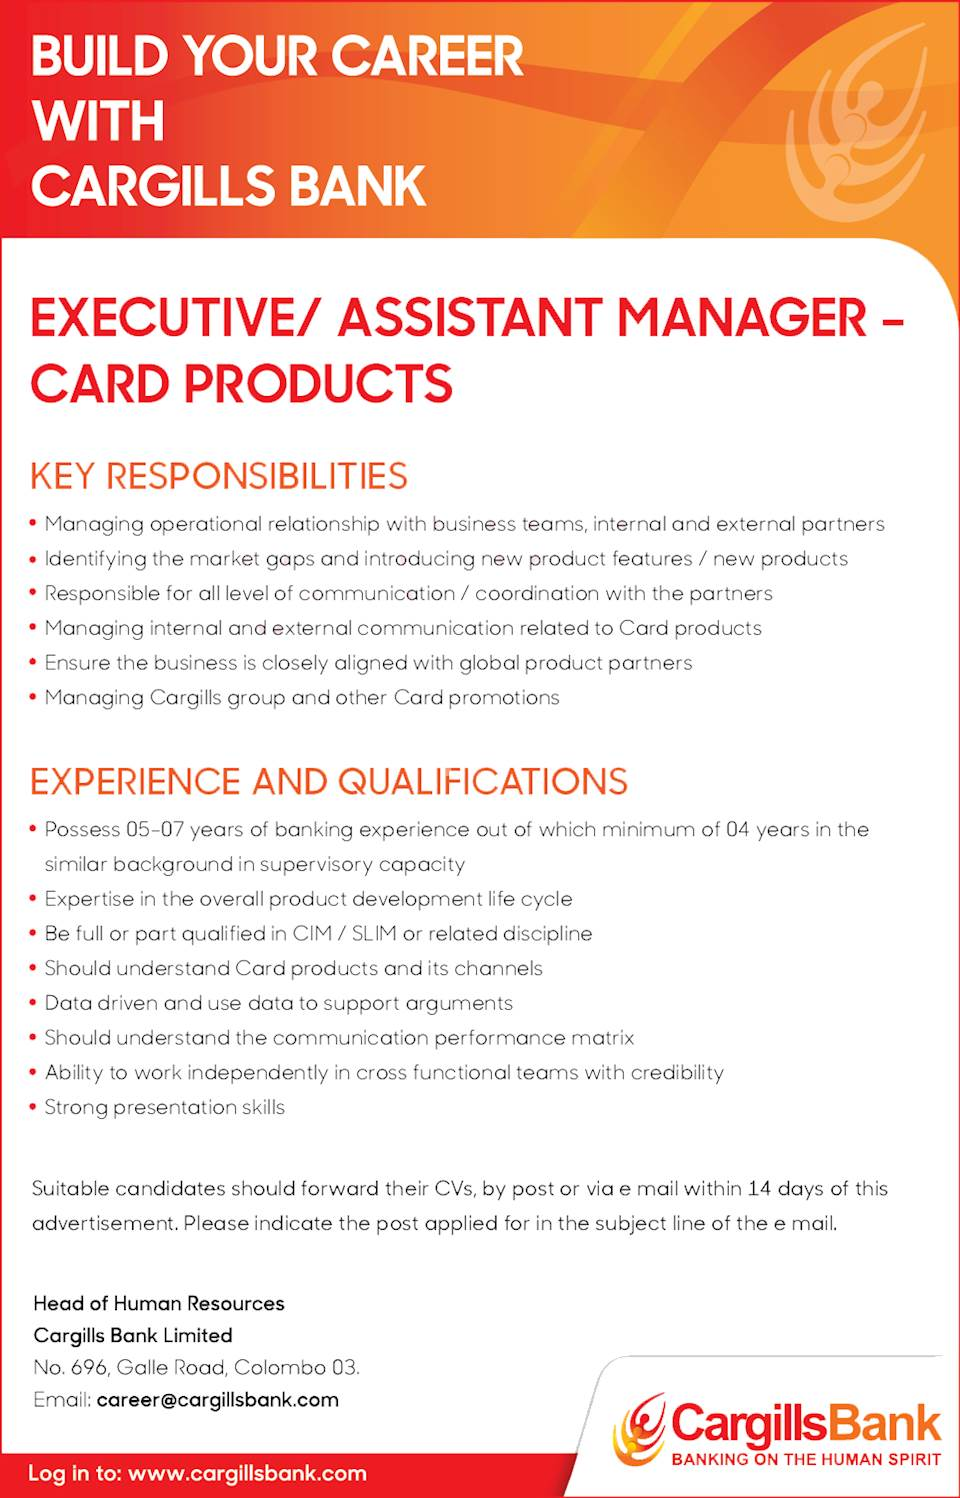 Executive / Assistant Manager - Card Products